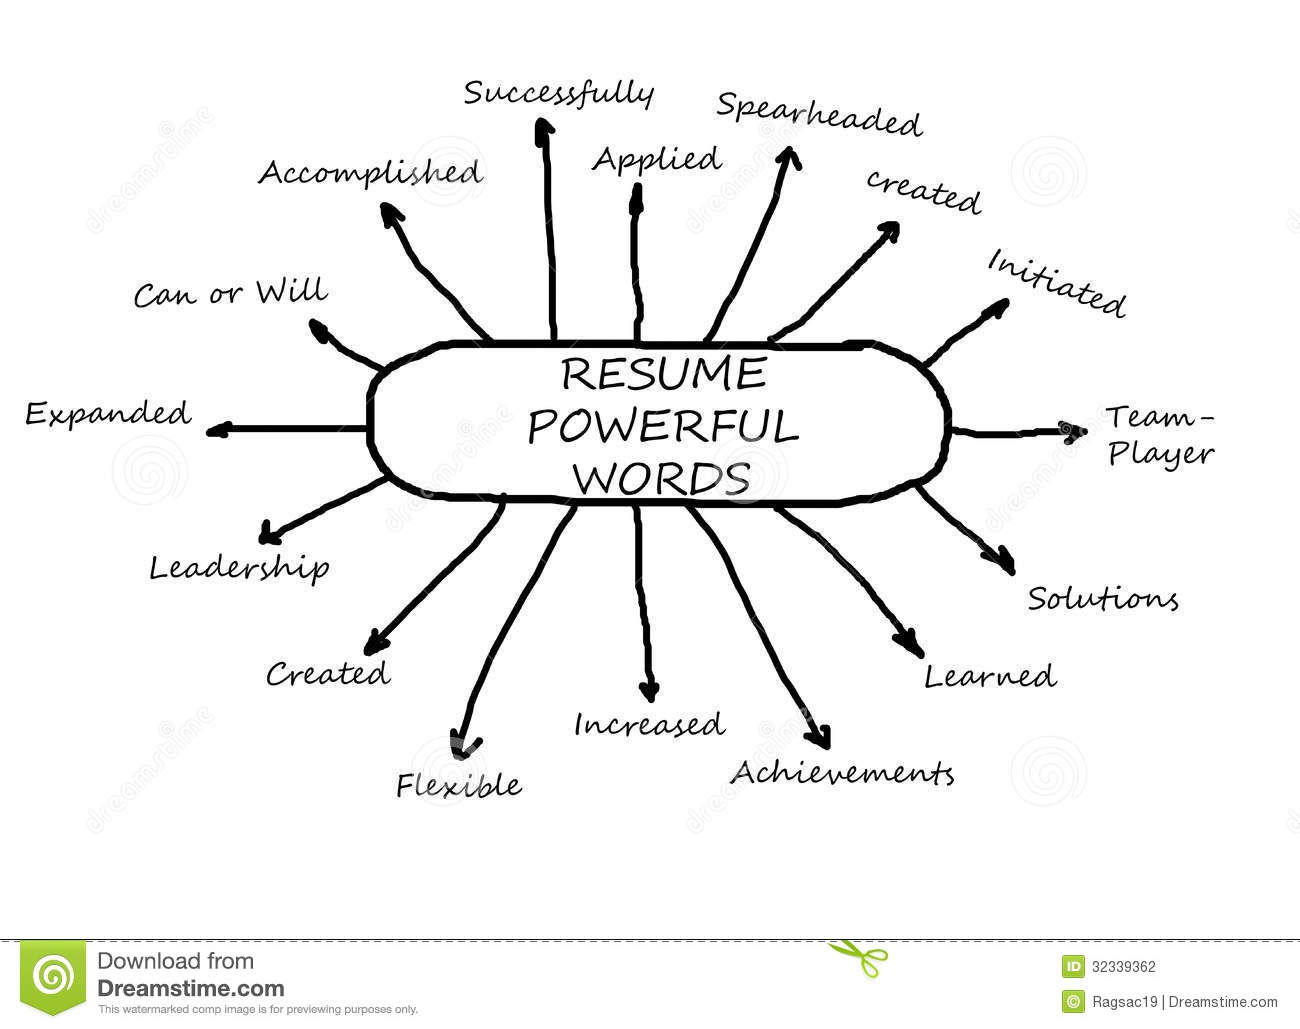 Action Words That Make Your Resume Rock   Squawkfox